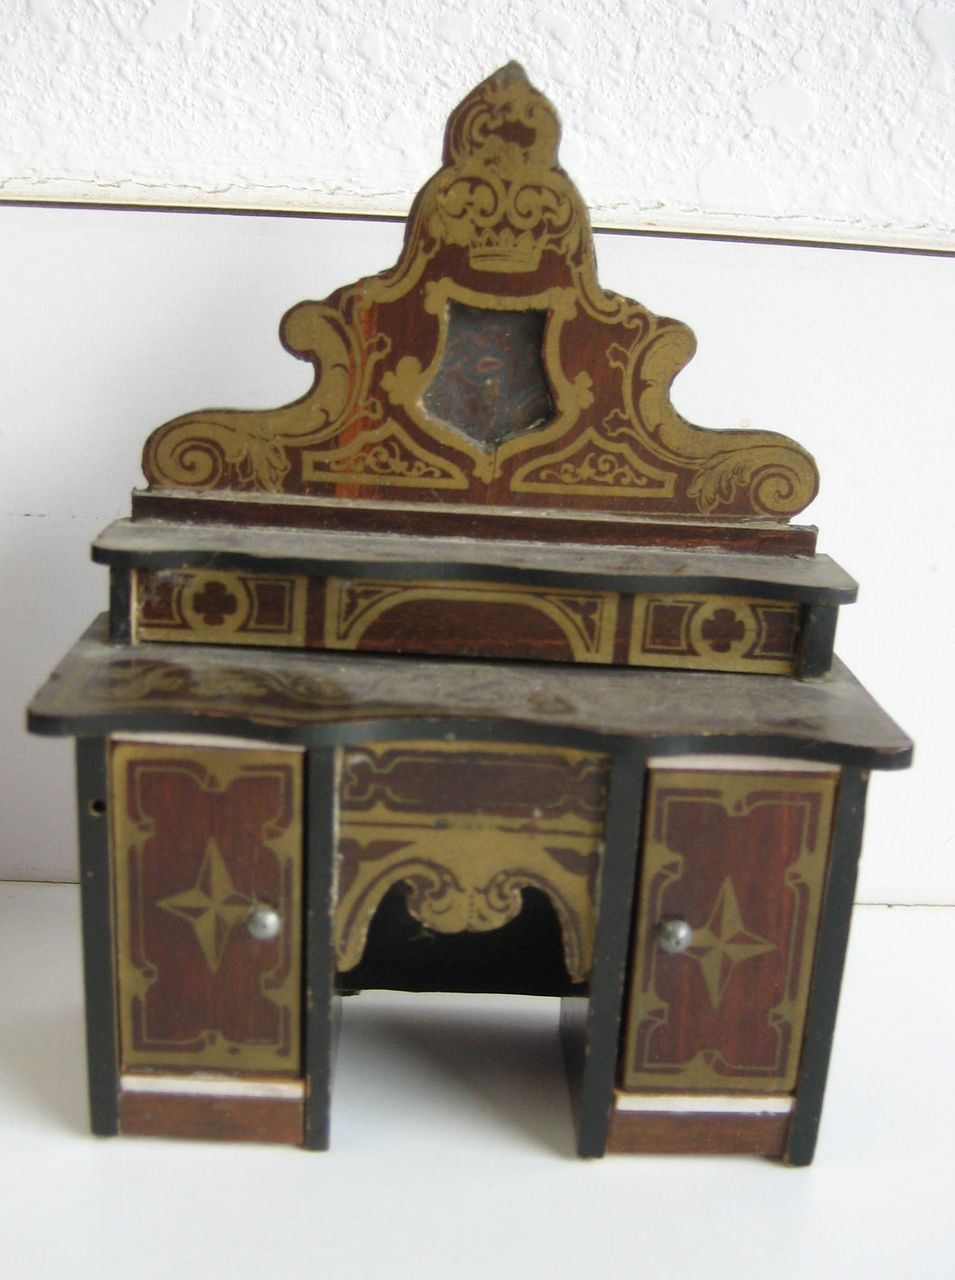 Charming Vintage Dollhouse Furniture For Sale Part - 12: Antique Doll House Miniature Buffet Boule Walterhausen Biedermeier Furniture  Gilt Design Small Scale